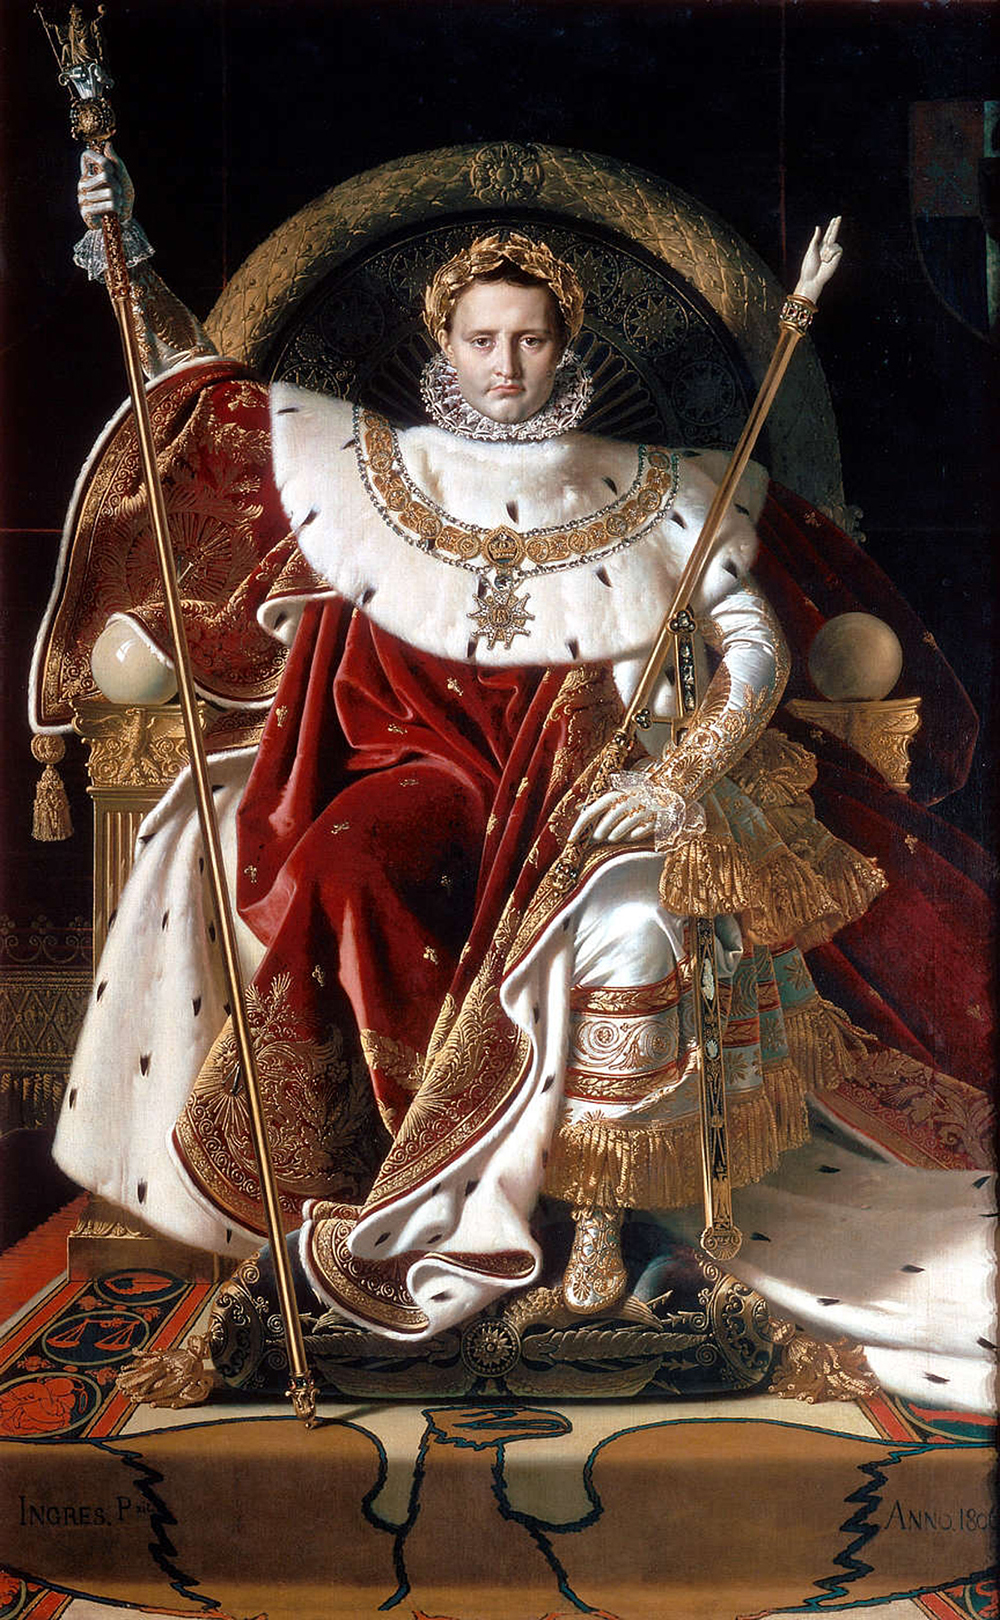 Napoleon on His Imperial Throne, by Jean Auguste Dominique Ingres, 1806. Wikimedia Commons, Musée de l'Armée.